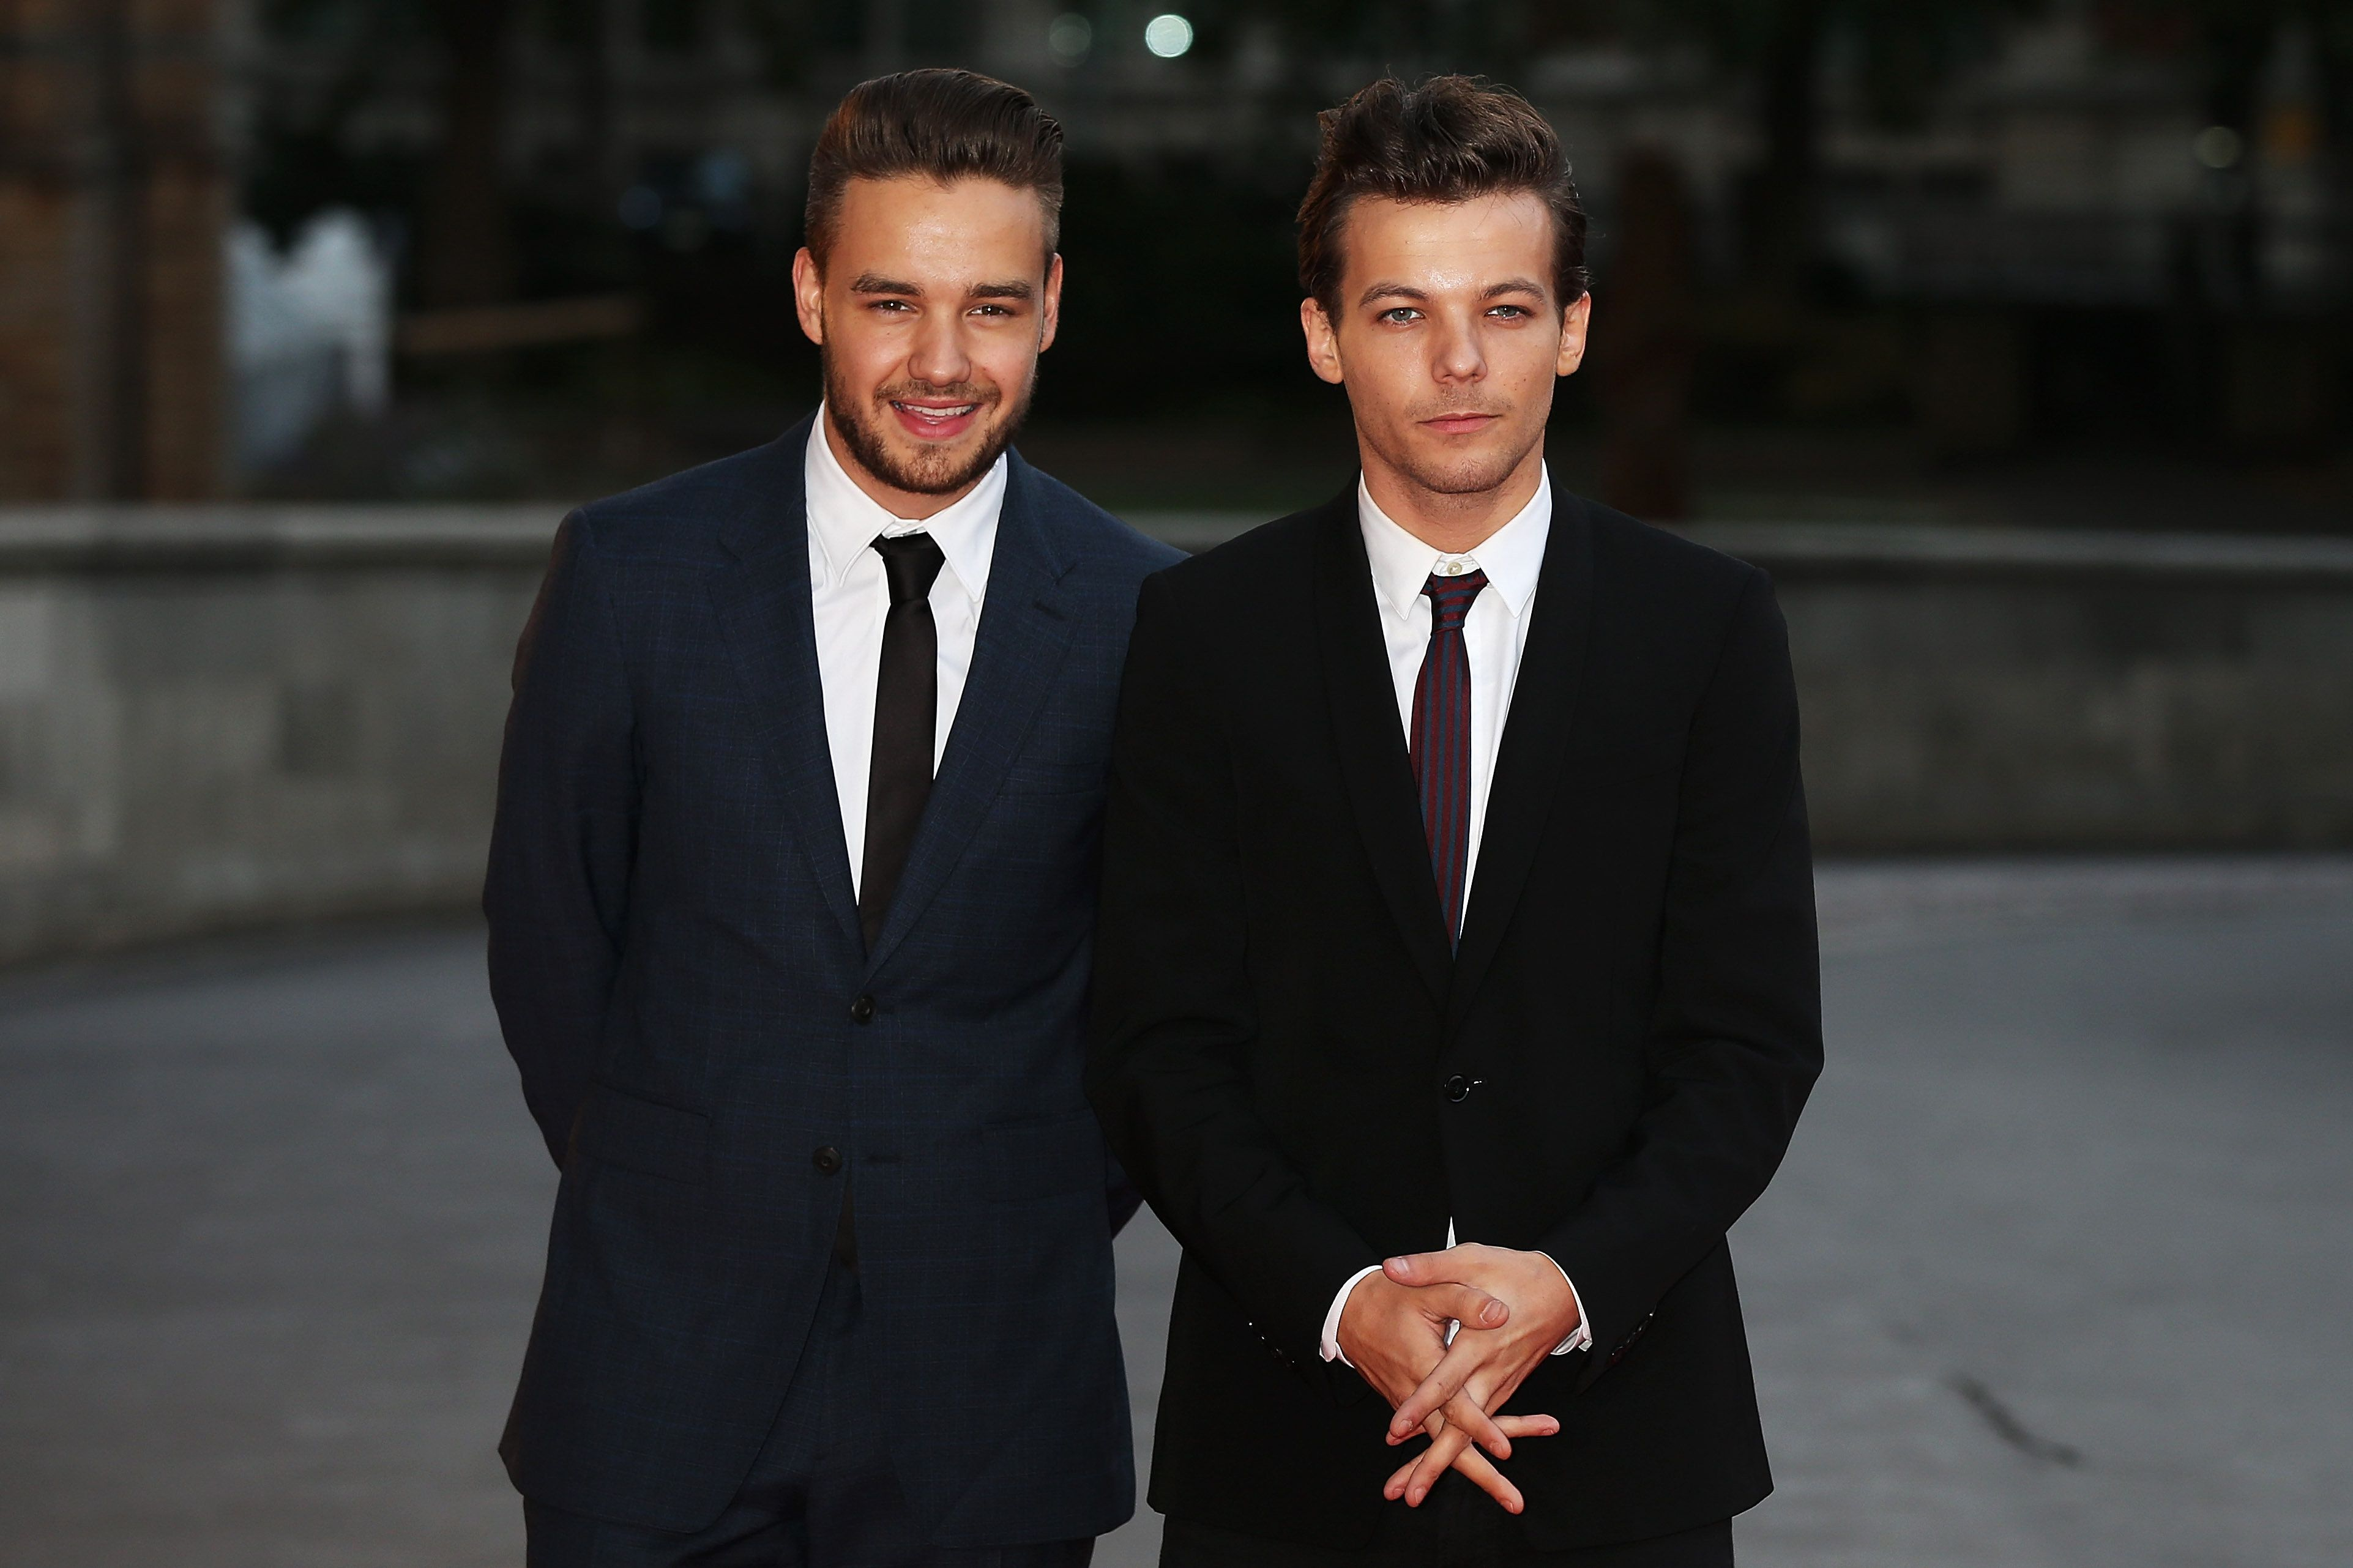 LONDON, ENGLAND - AUGUST 10:  (SUN NEWSPAPER OUT. MANDATORY CREDIT PHOTO BY DAVE J. HOGAN GETTY IMAGES REQUIRED) Louis Tomlinson (R) and Liam Payne attend the Believe in Magic Cinderella Ball at the Natural History Museum on August 10, 2015 in London, England.  (Photo by Dave J Hogan/Getty Images)